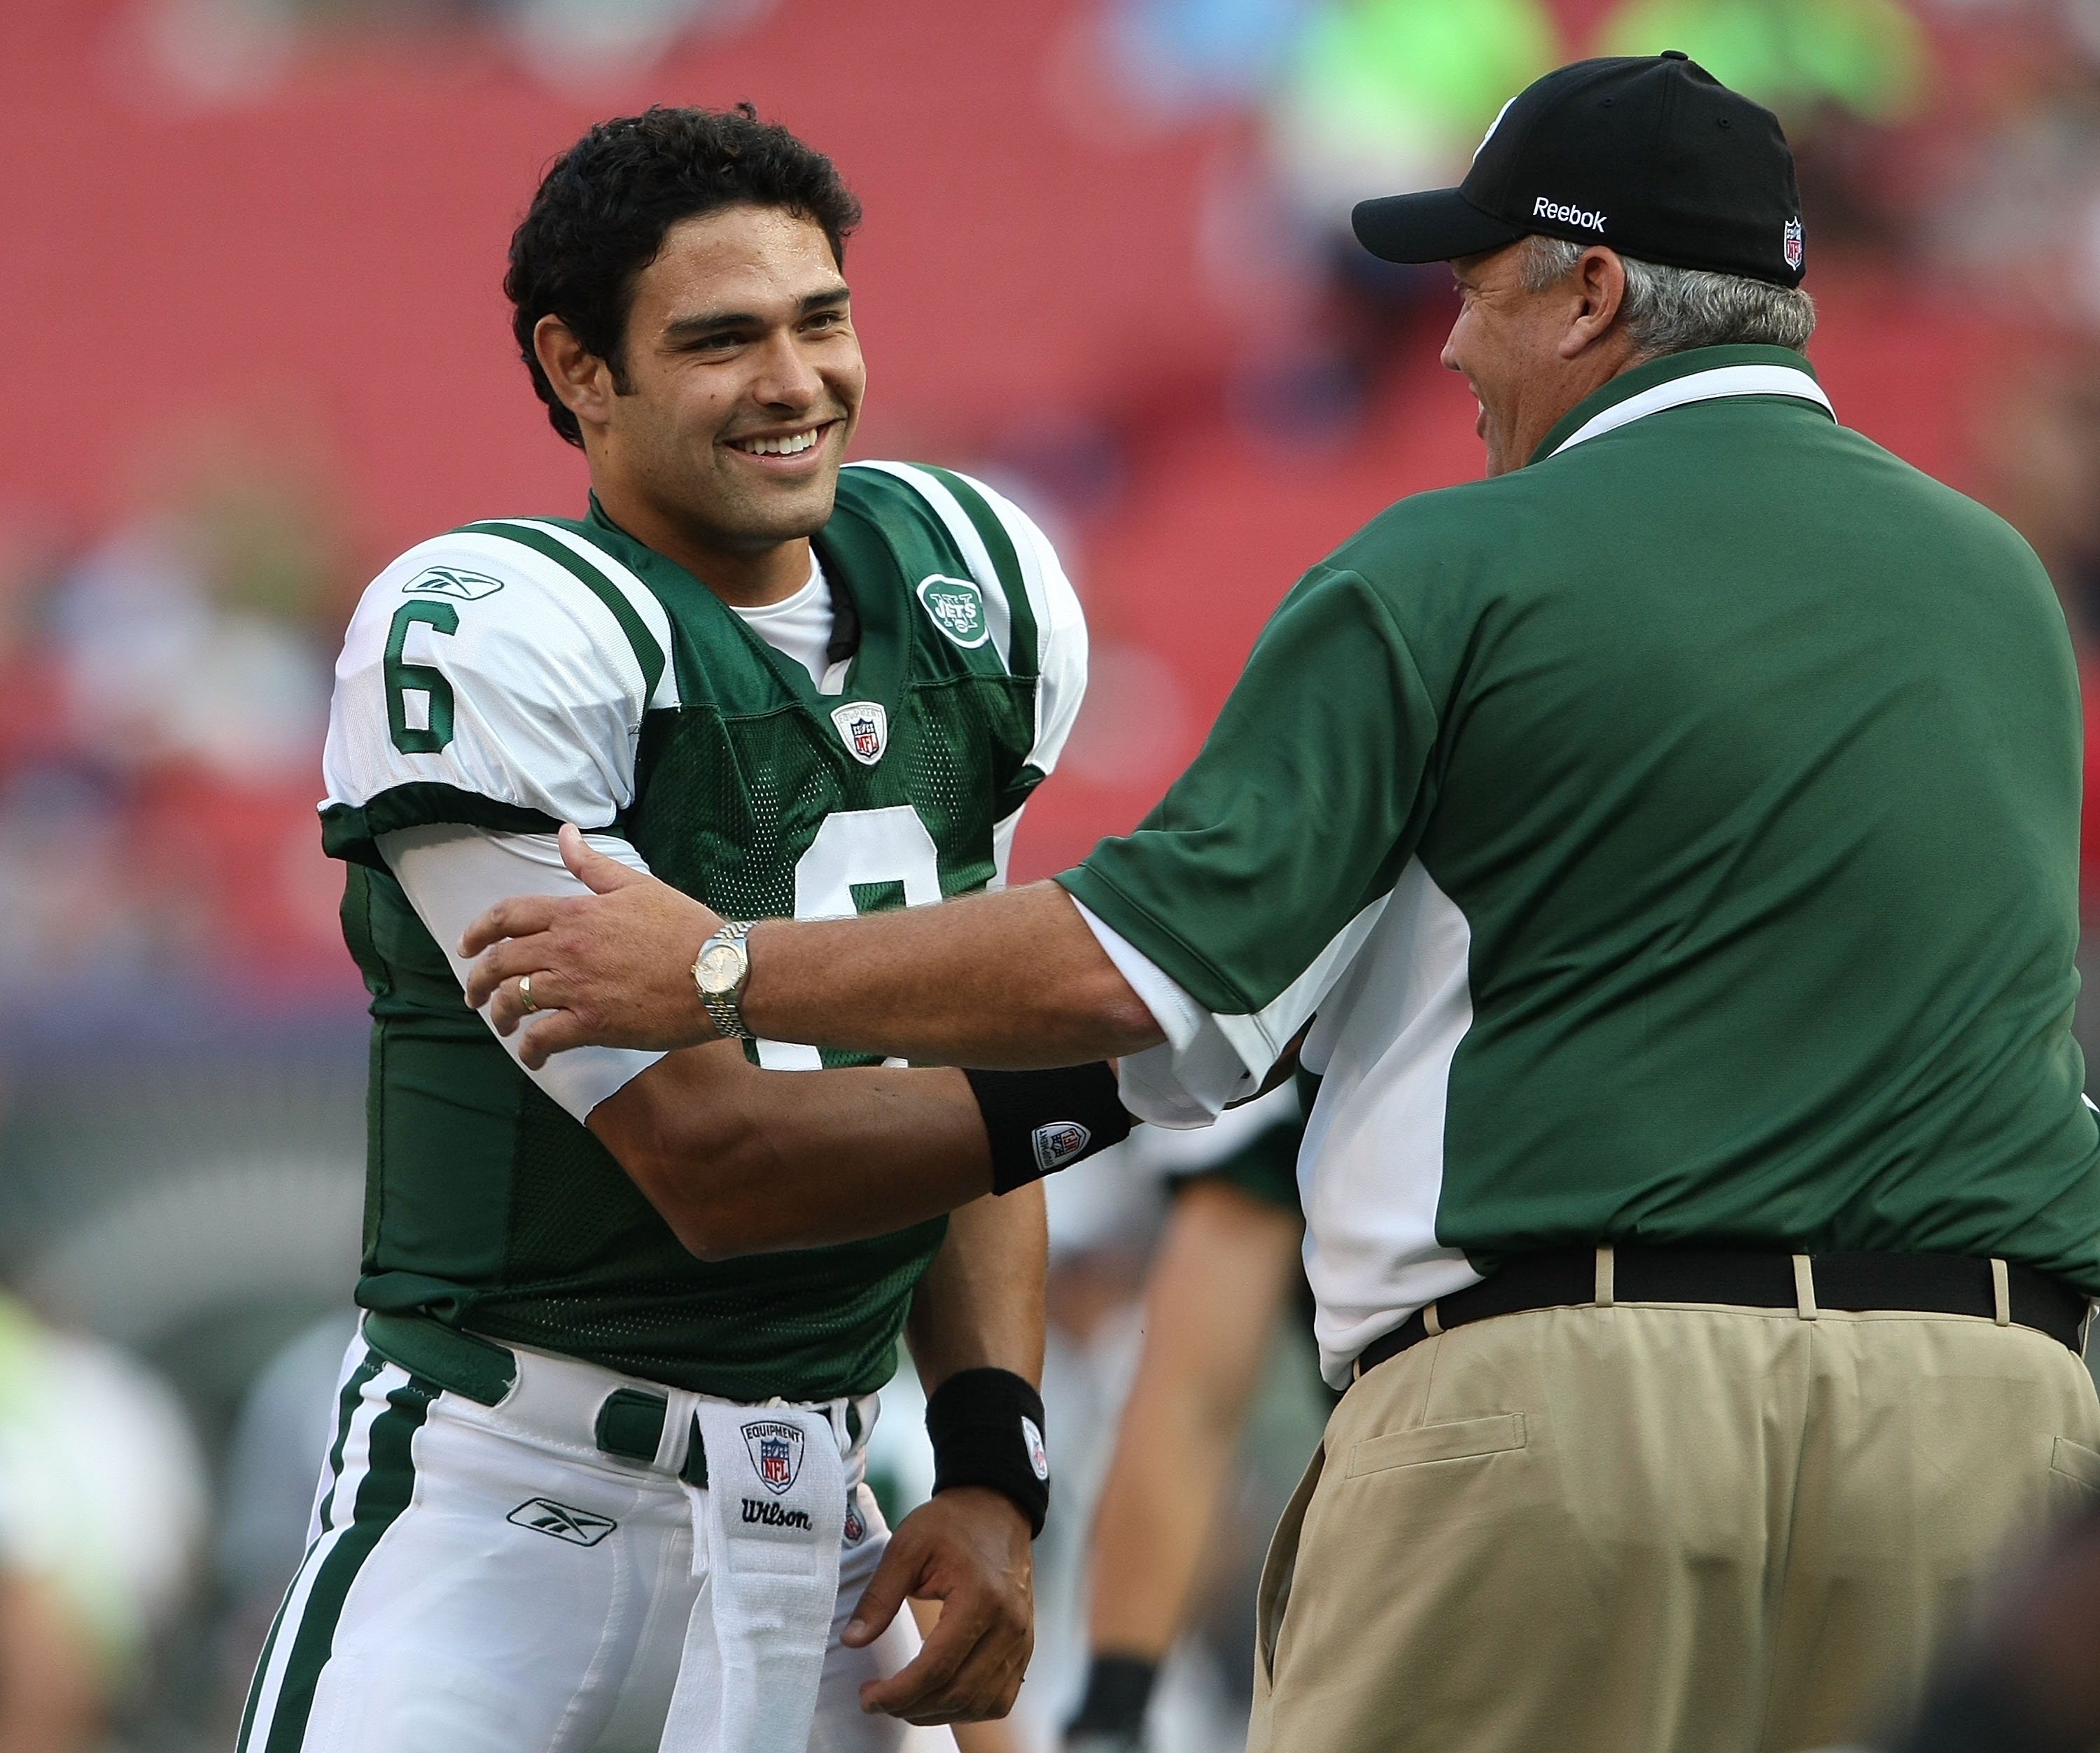 EAST RUTHERFORD, NJ - AUGUST 14:  Mark Sanchez #6 of the New York Jets shakes hands with head coach Rex Ryan prior to the preseason game against the St. Louis Rams at Giants Stadium on August 14, 2009  in East Rutherford, New Jersey.  (Photo by Nick Laham